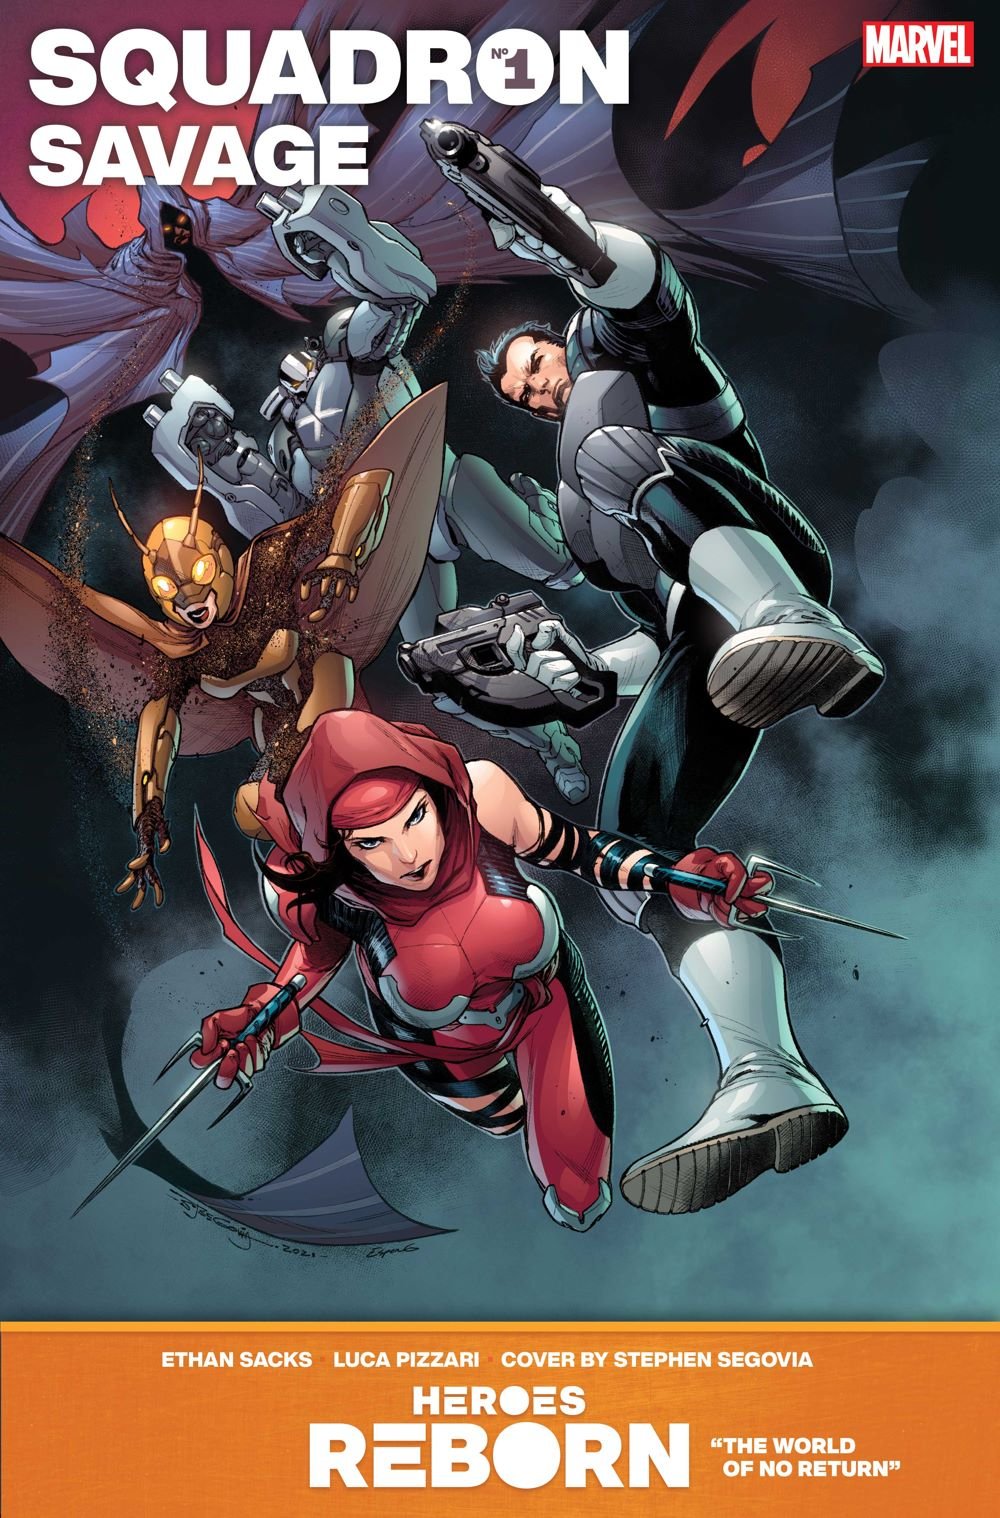 SQUADRON_SAVAGE Even more HEROES REBORN covers are revealed